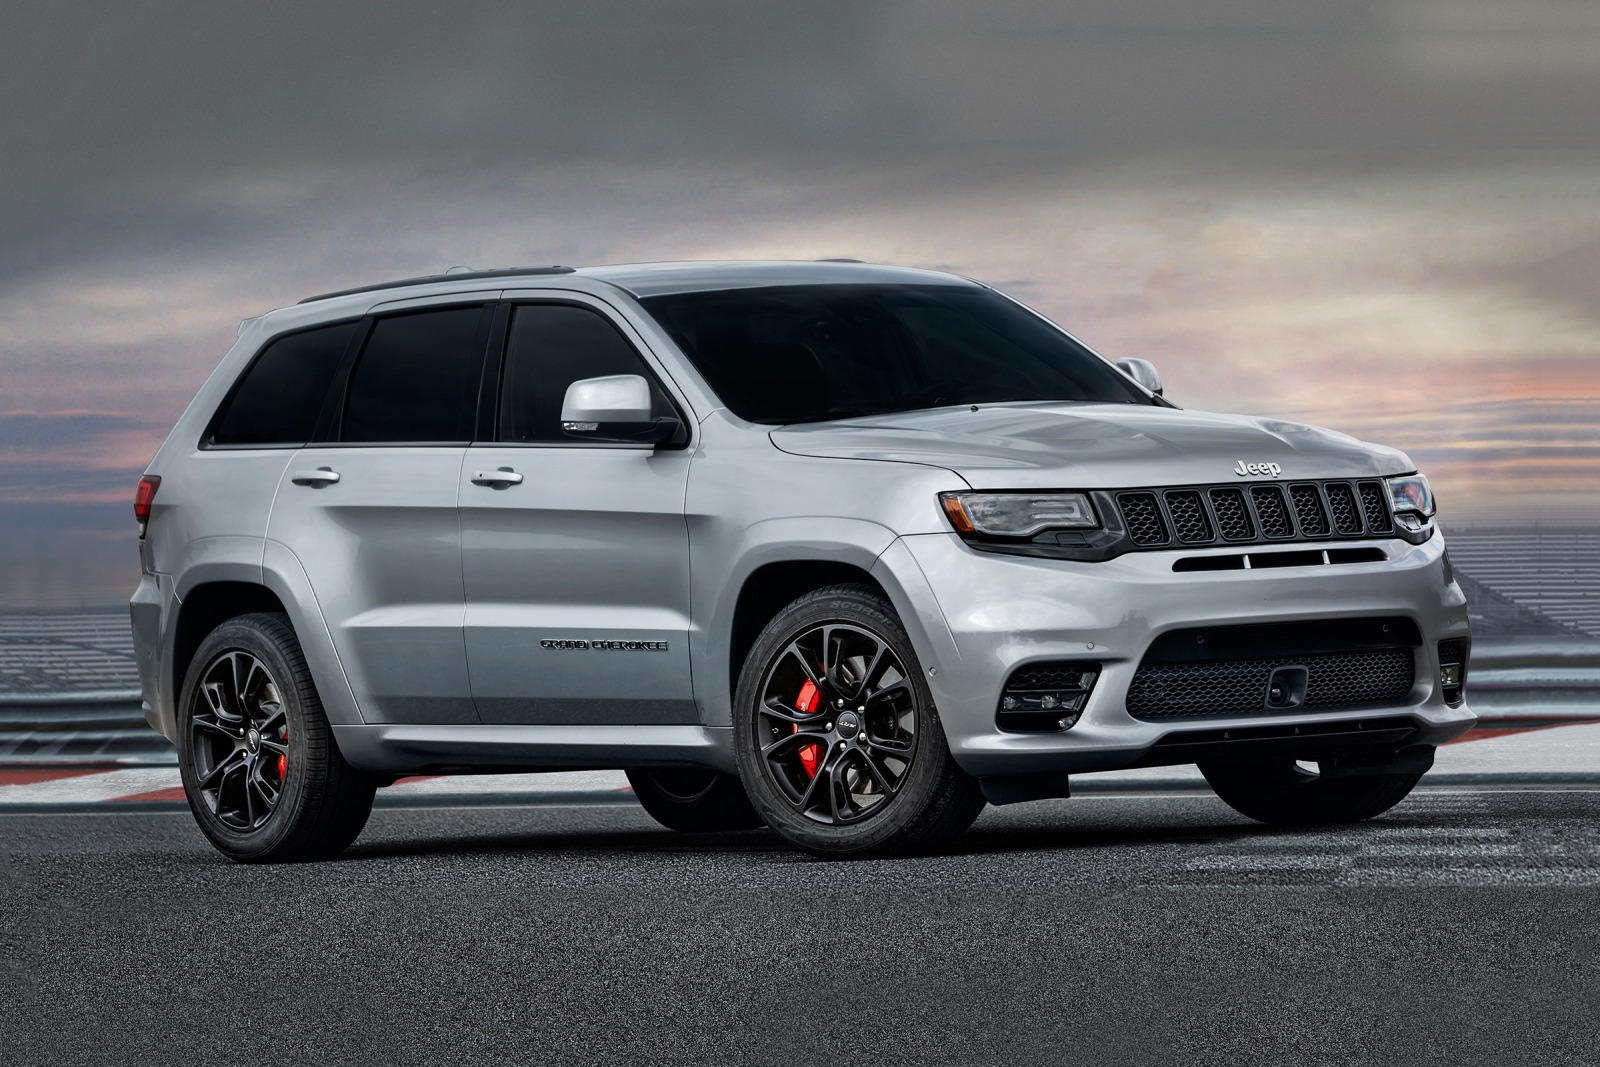 2020 Grand Cherokee Srt Hellcat Release Date and Concept